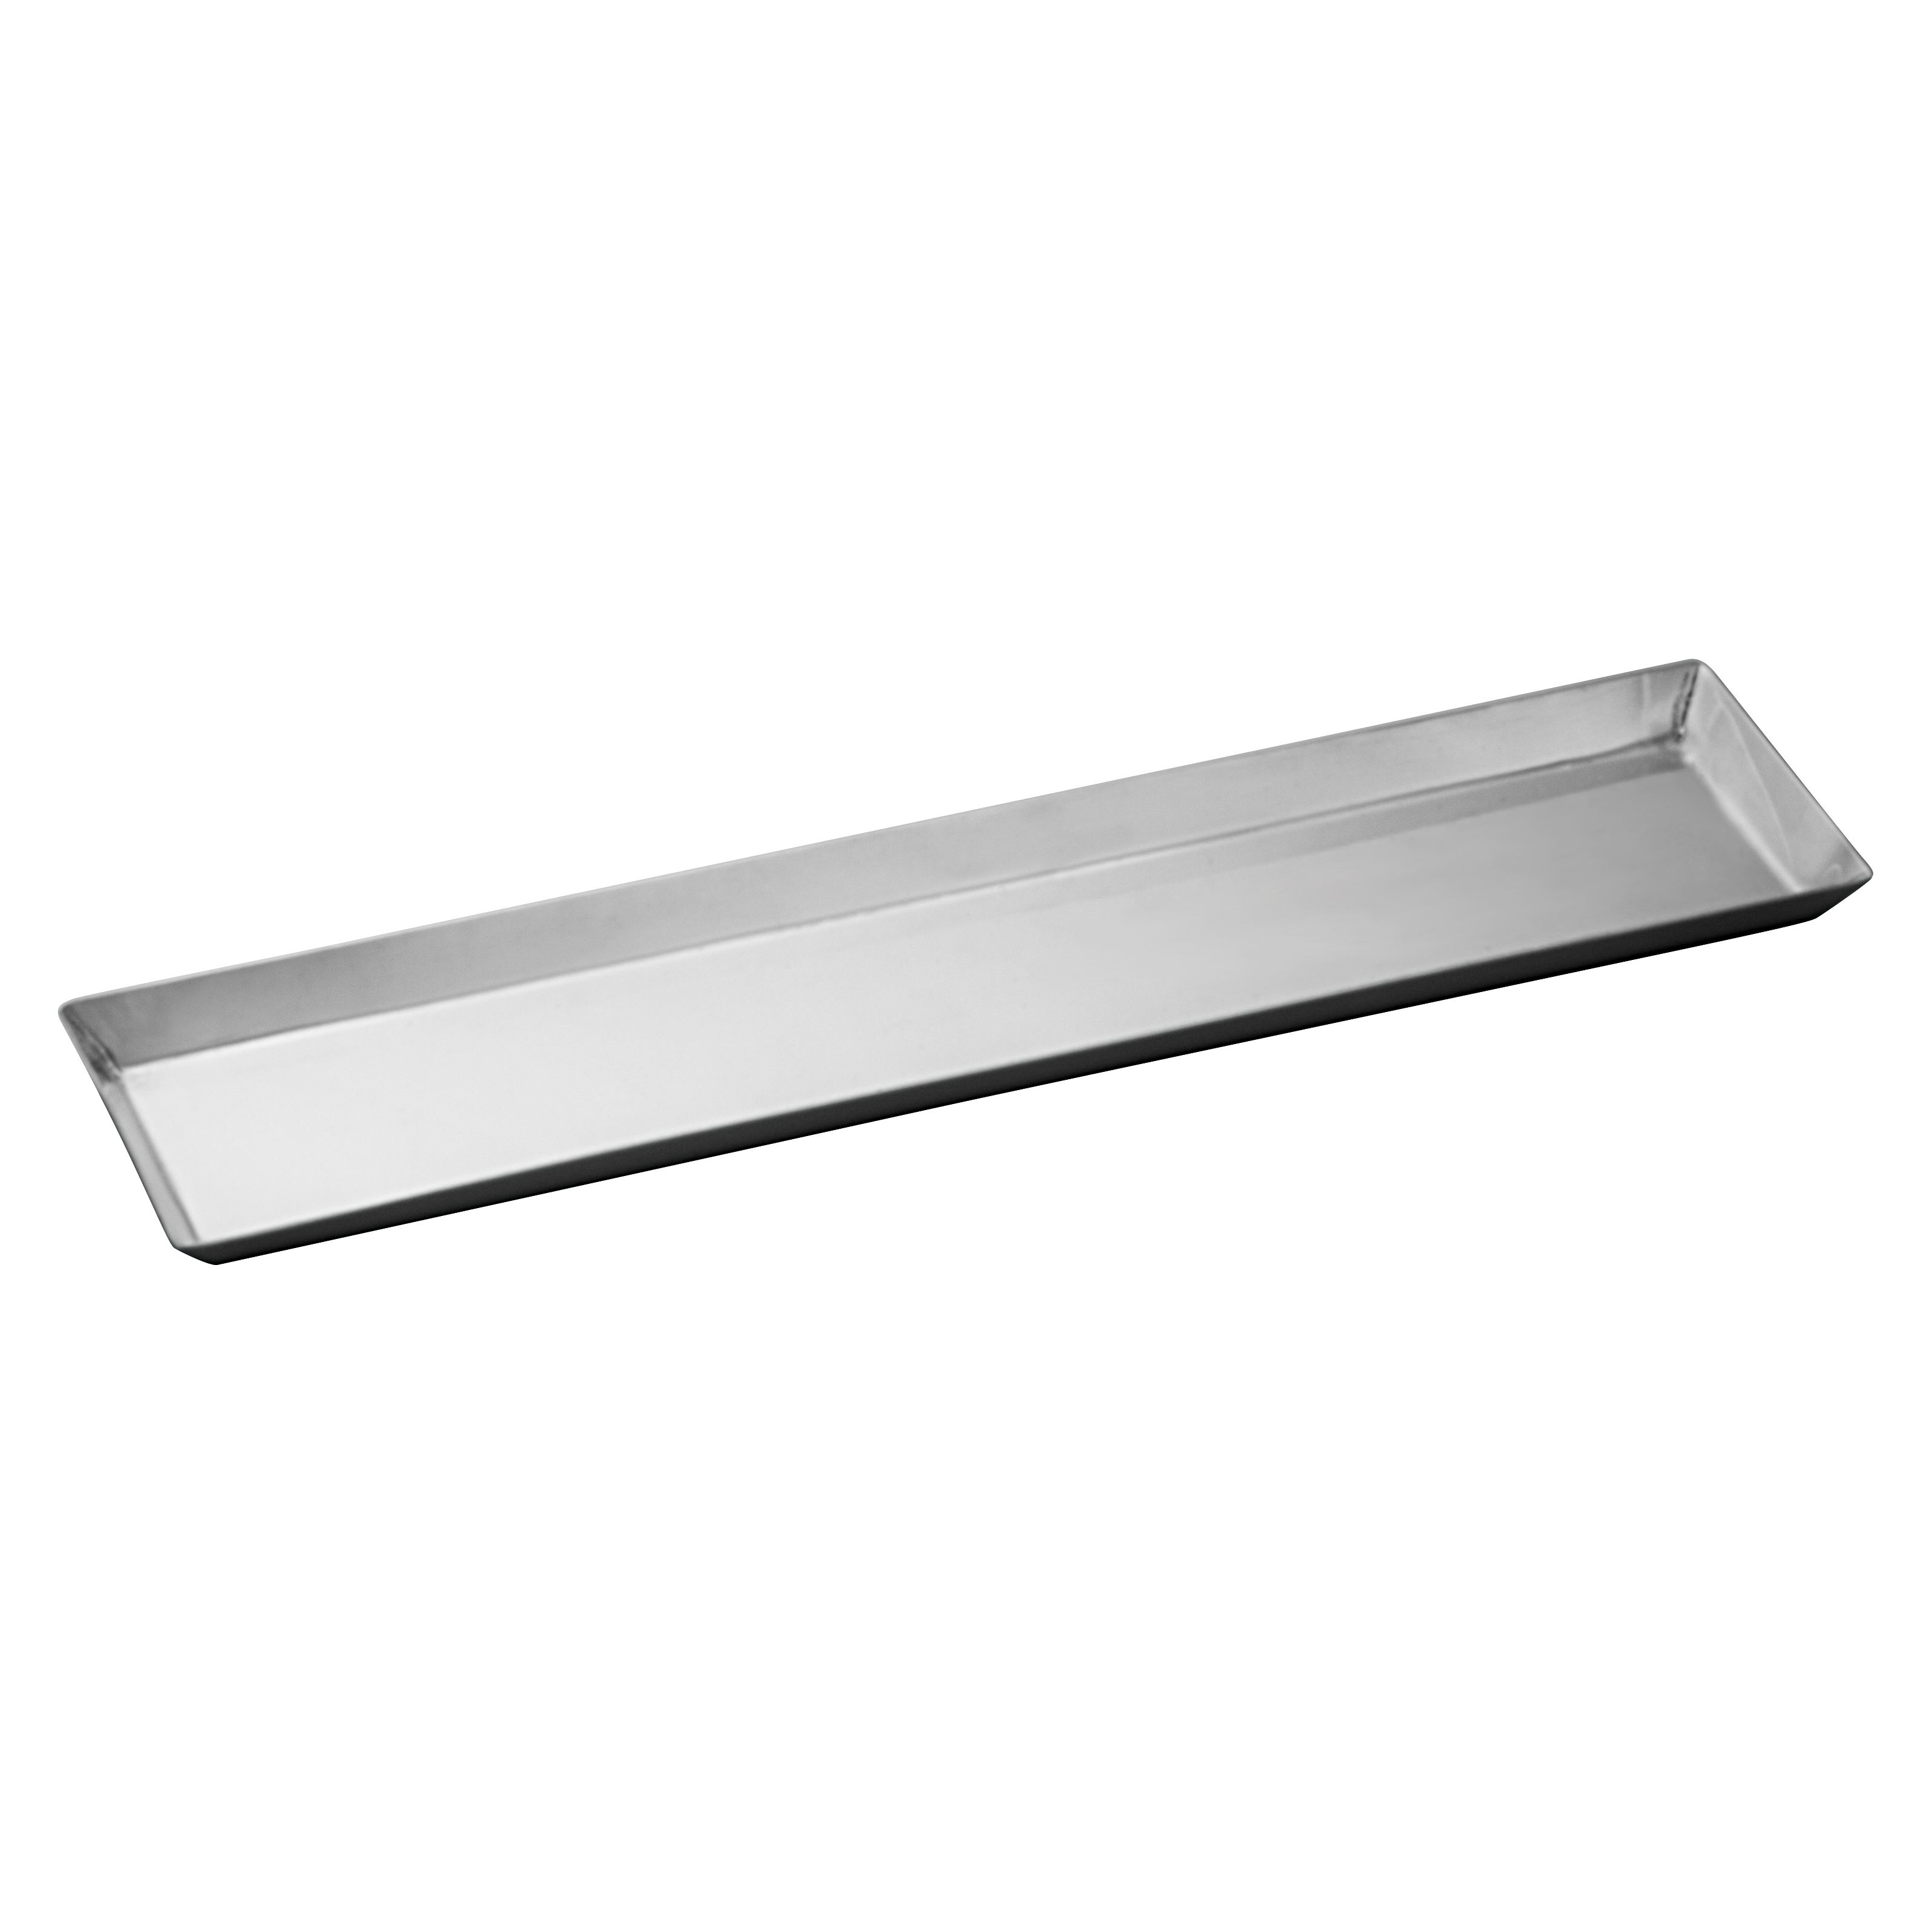 Winco DDSI-101S serving & display tray, metal